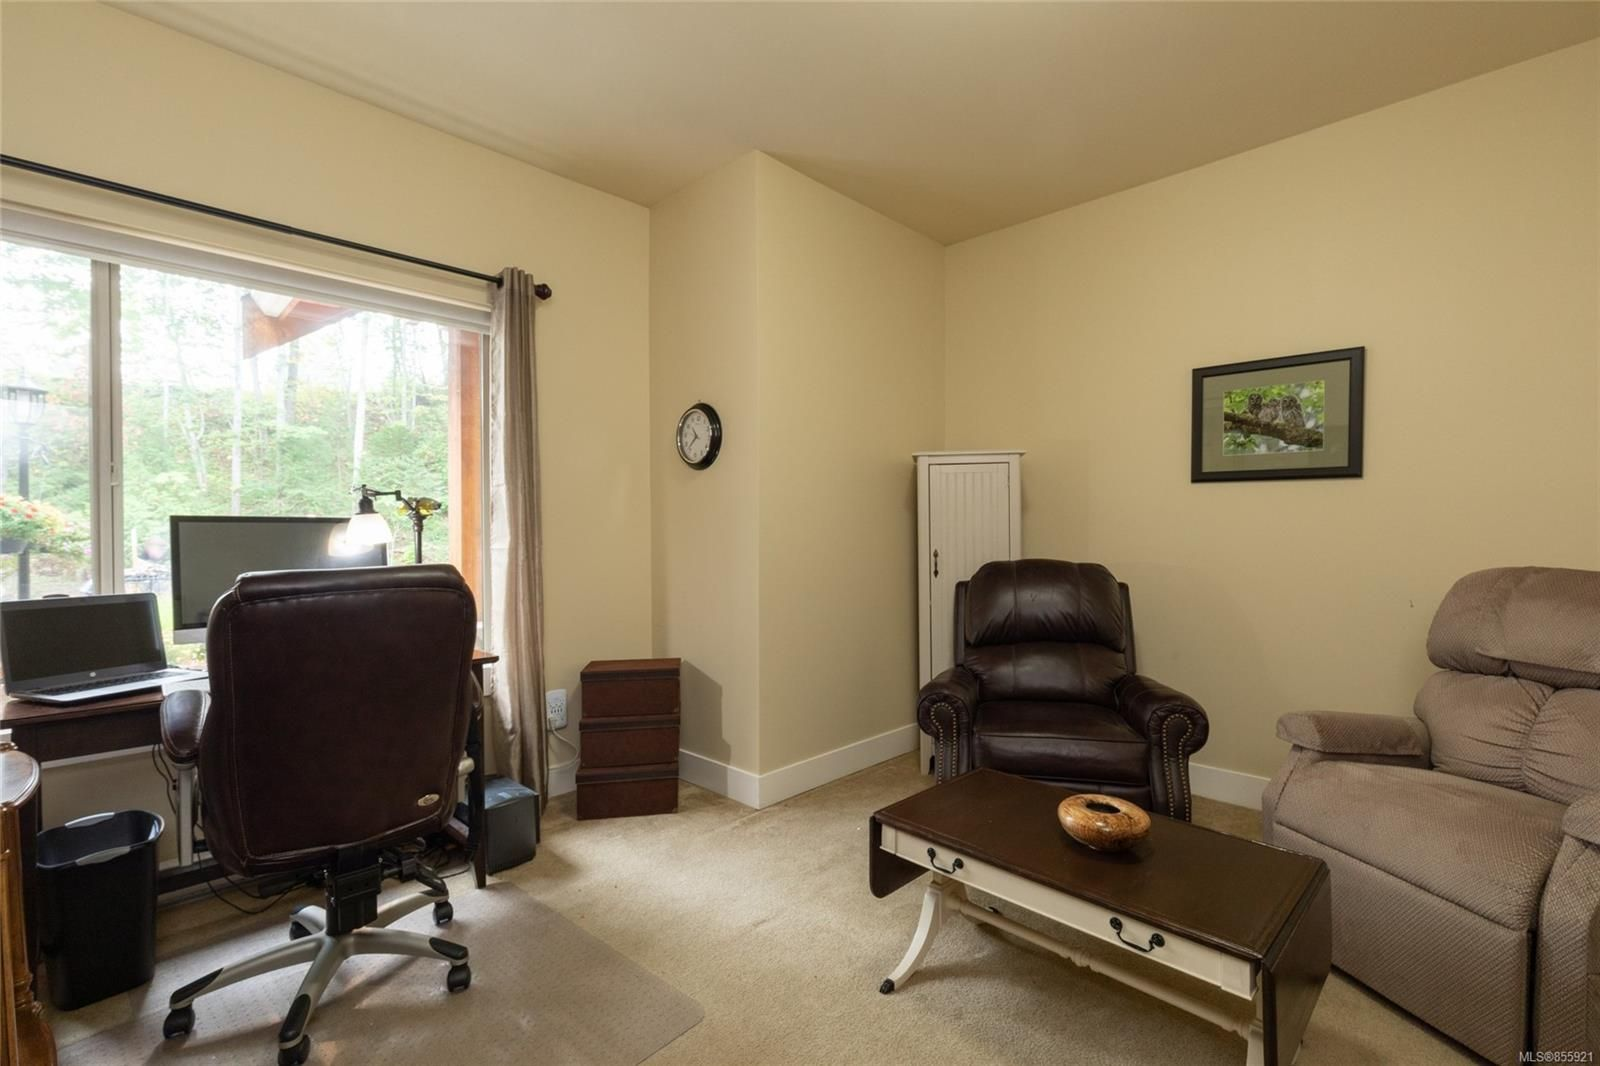 Photo 4: Photos: 206 1244 4TH Ave in : Du Ladysmith Row/Townhouse for sale (Duncan)  : MLS®# 855921